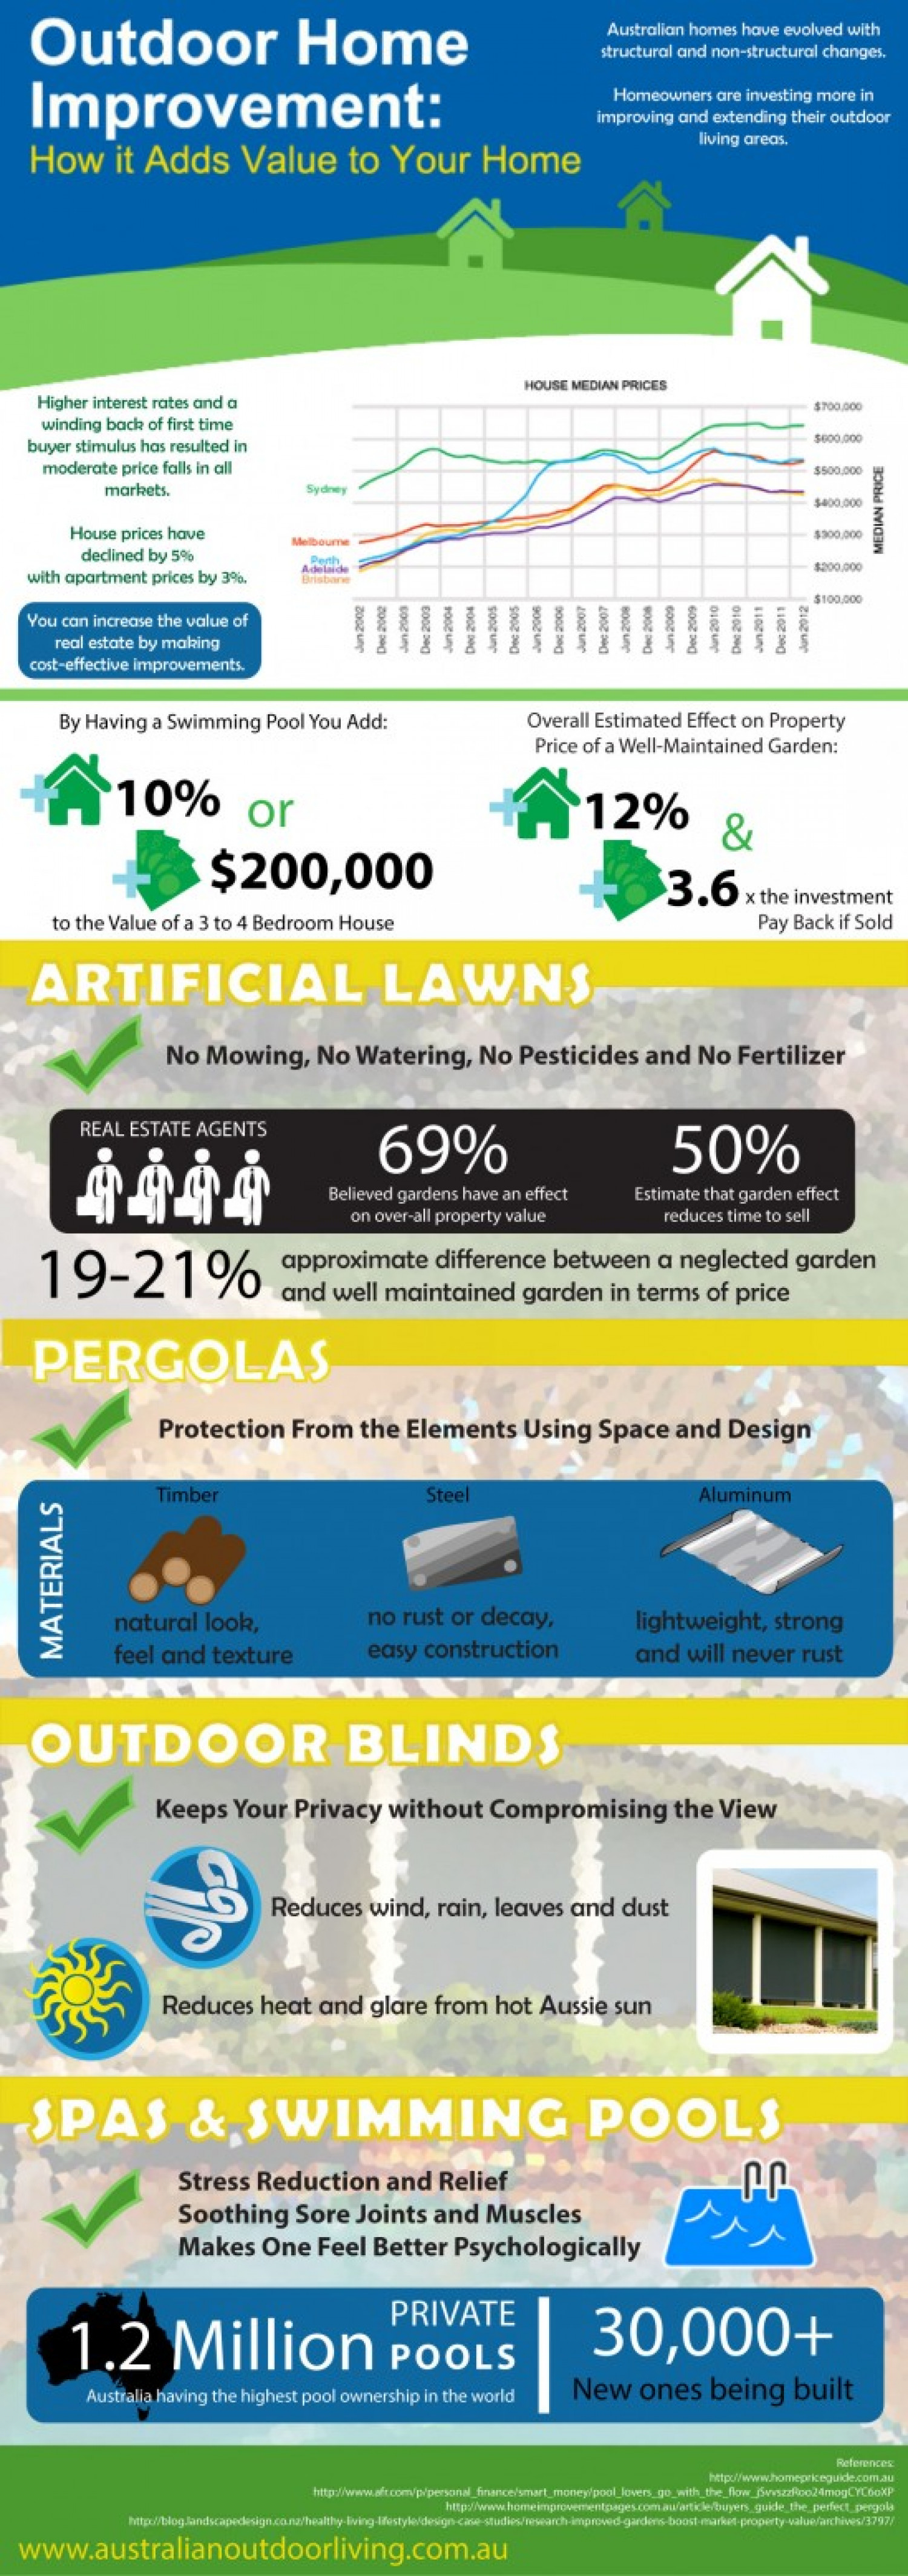 Outdoor Home Improvement: How it Adds Value to Your Home Infographic